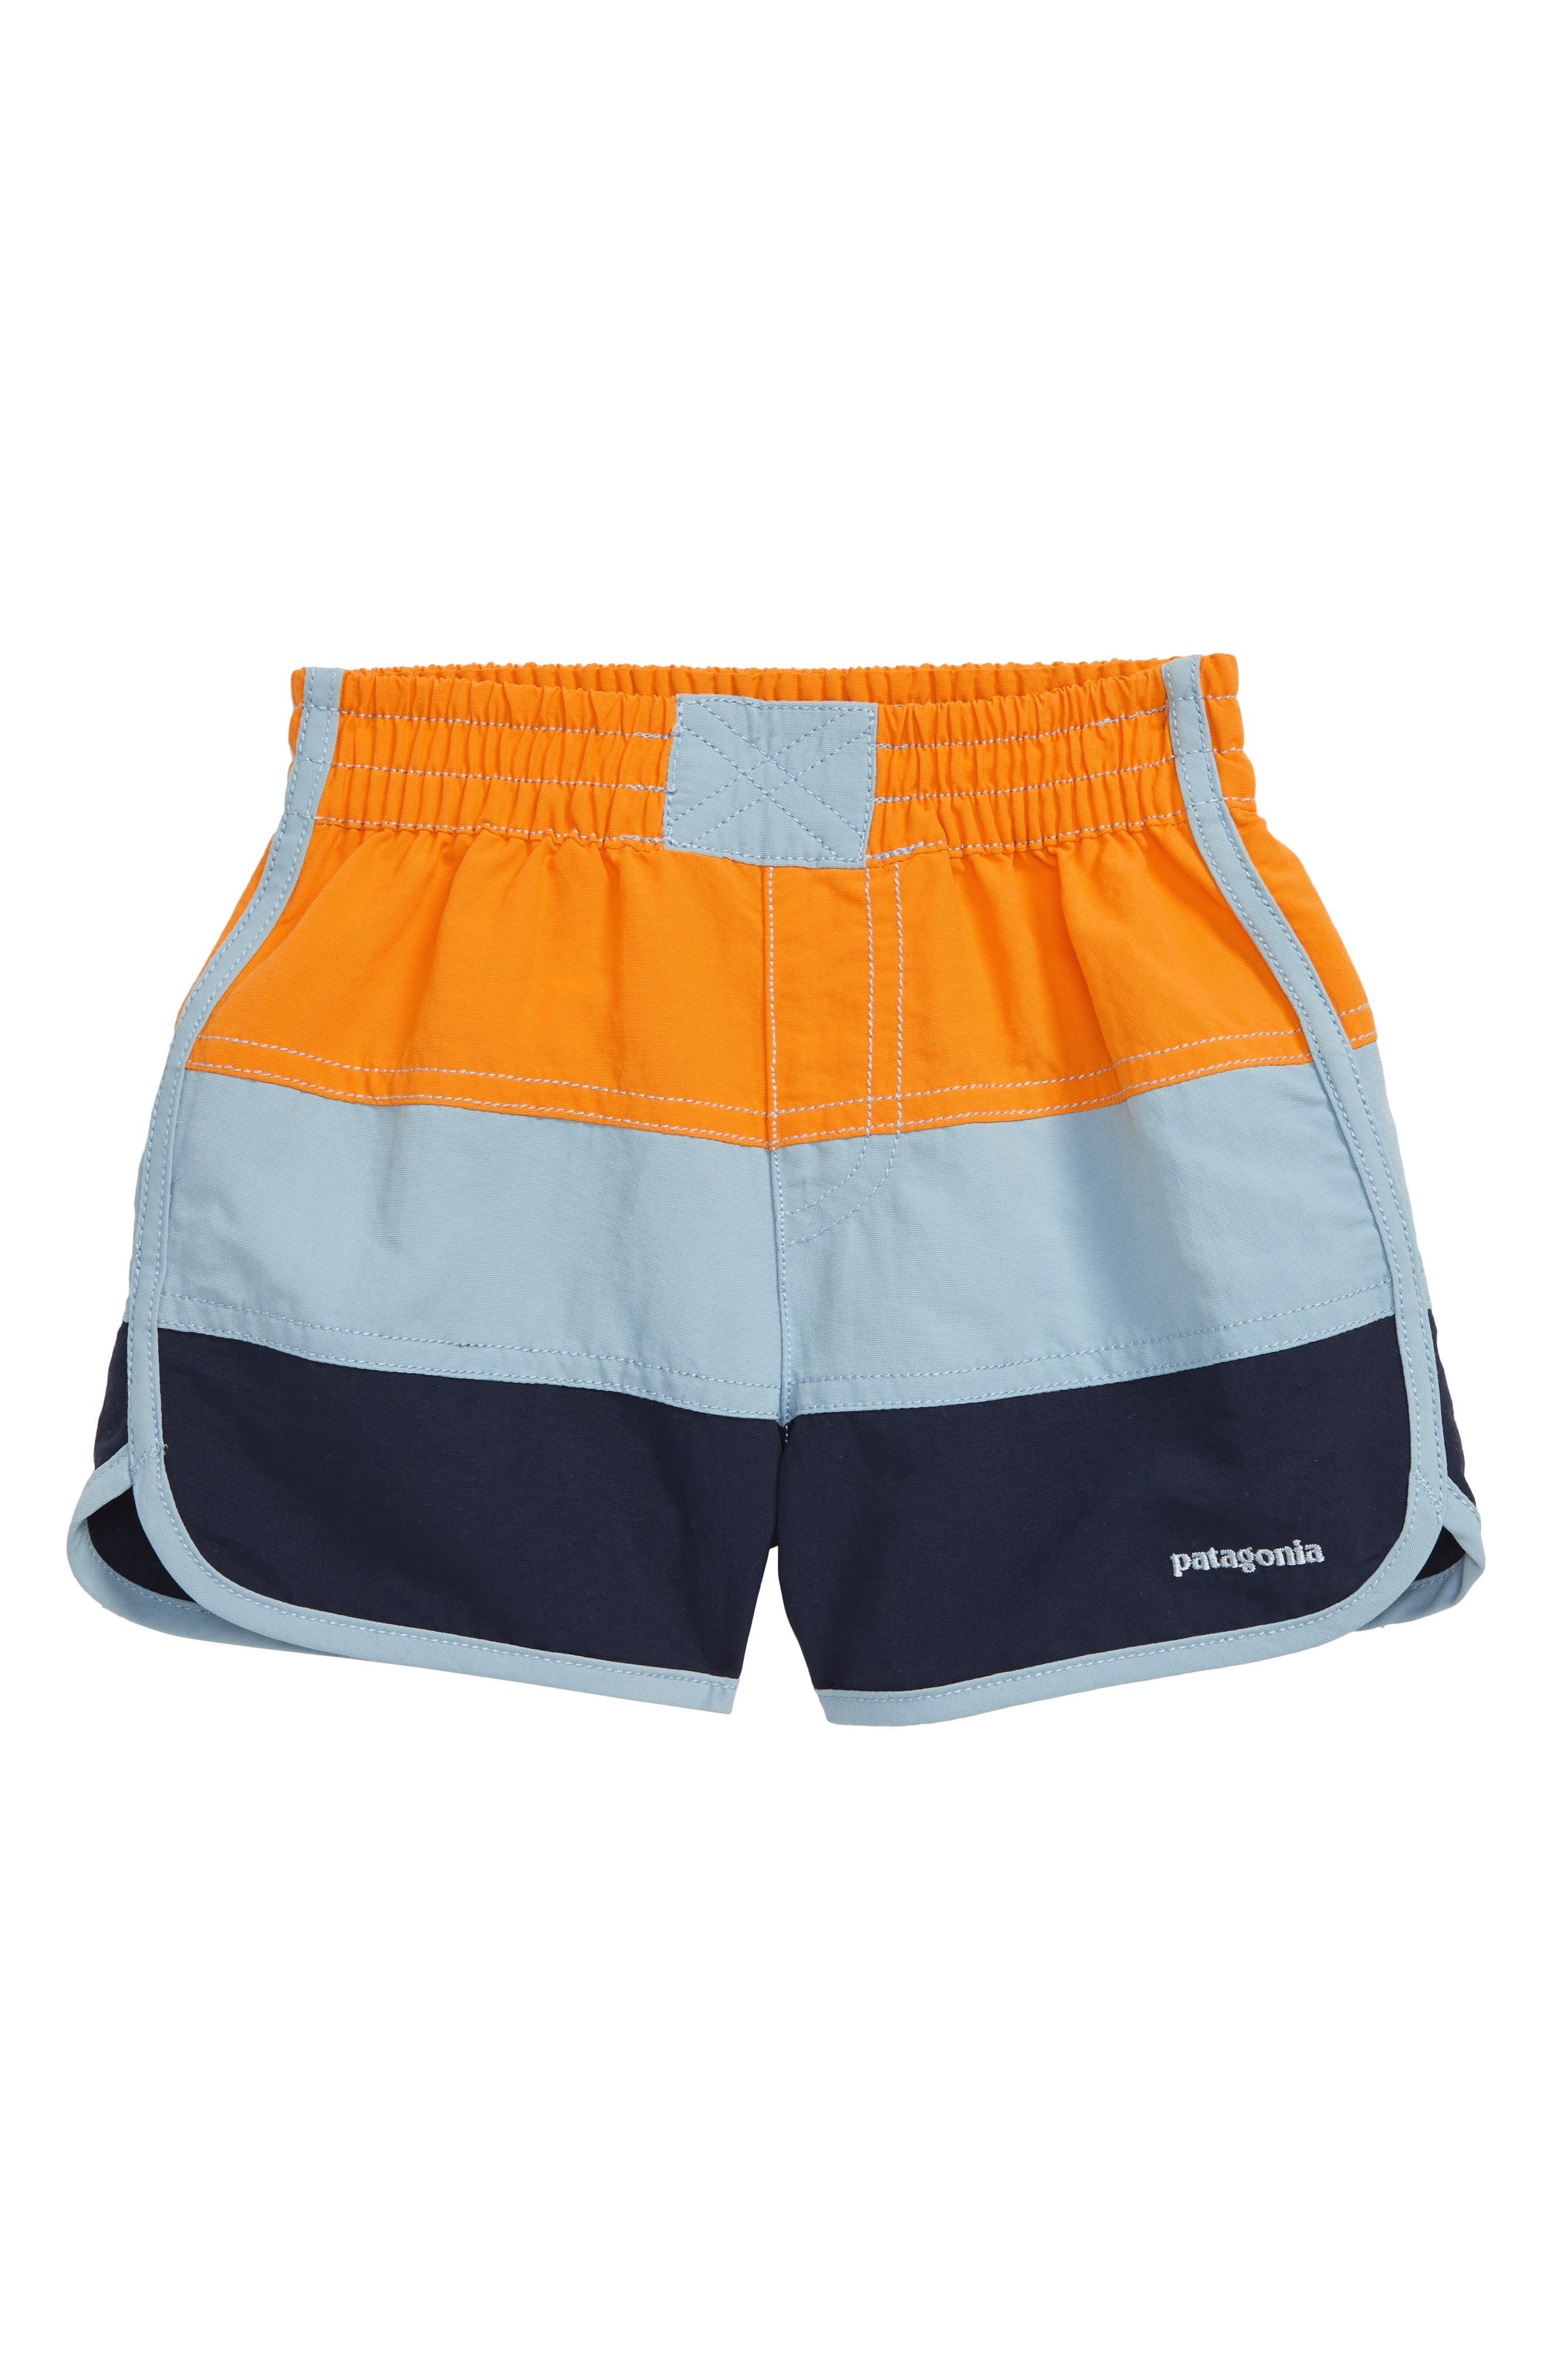 Cool color blocking and quick-dry Supplex nylon make these relaxed elastic-waist shorts a sure poolside favorite. Style Name: Patagonia Board Shorts (Toddler). Style Number: 5519161. Available in stores.